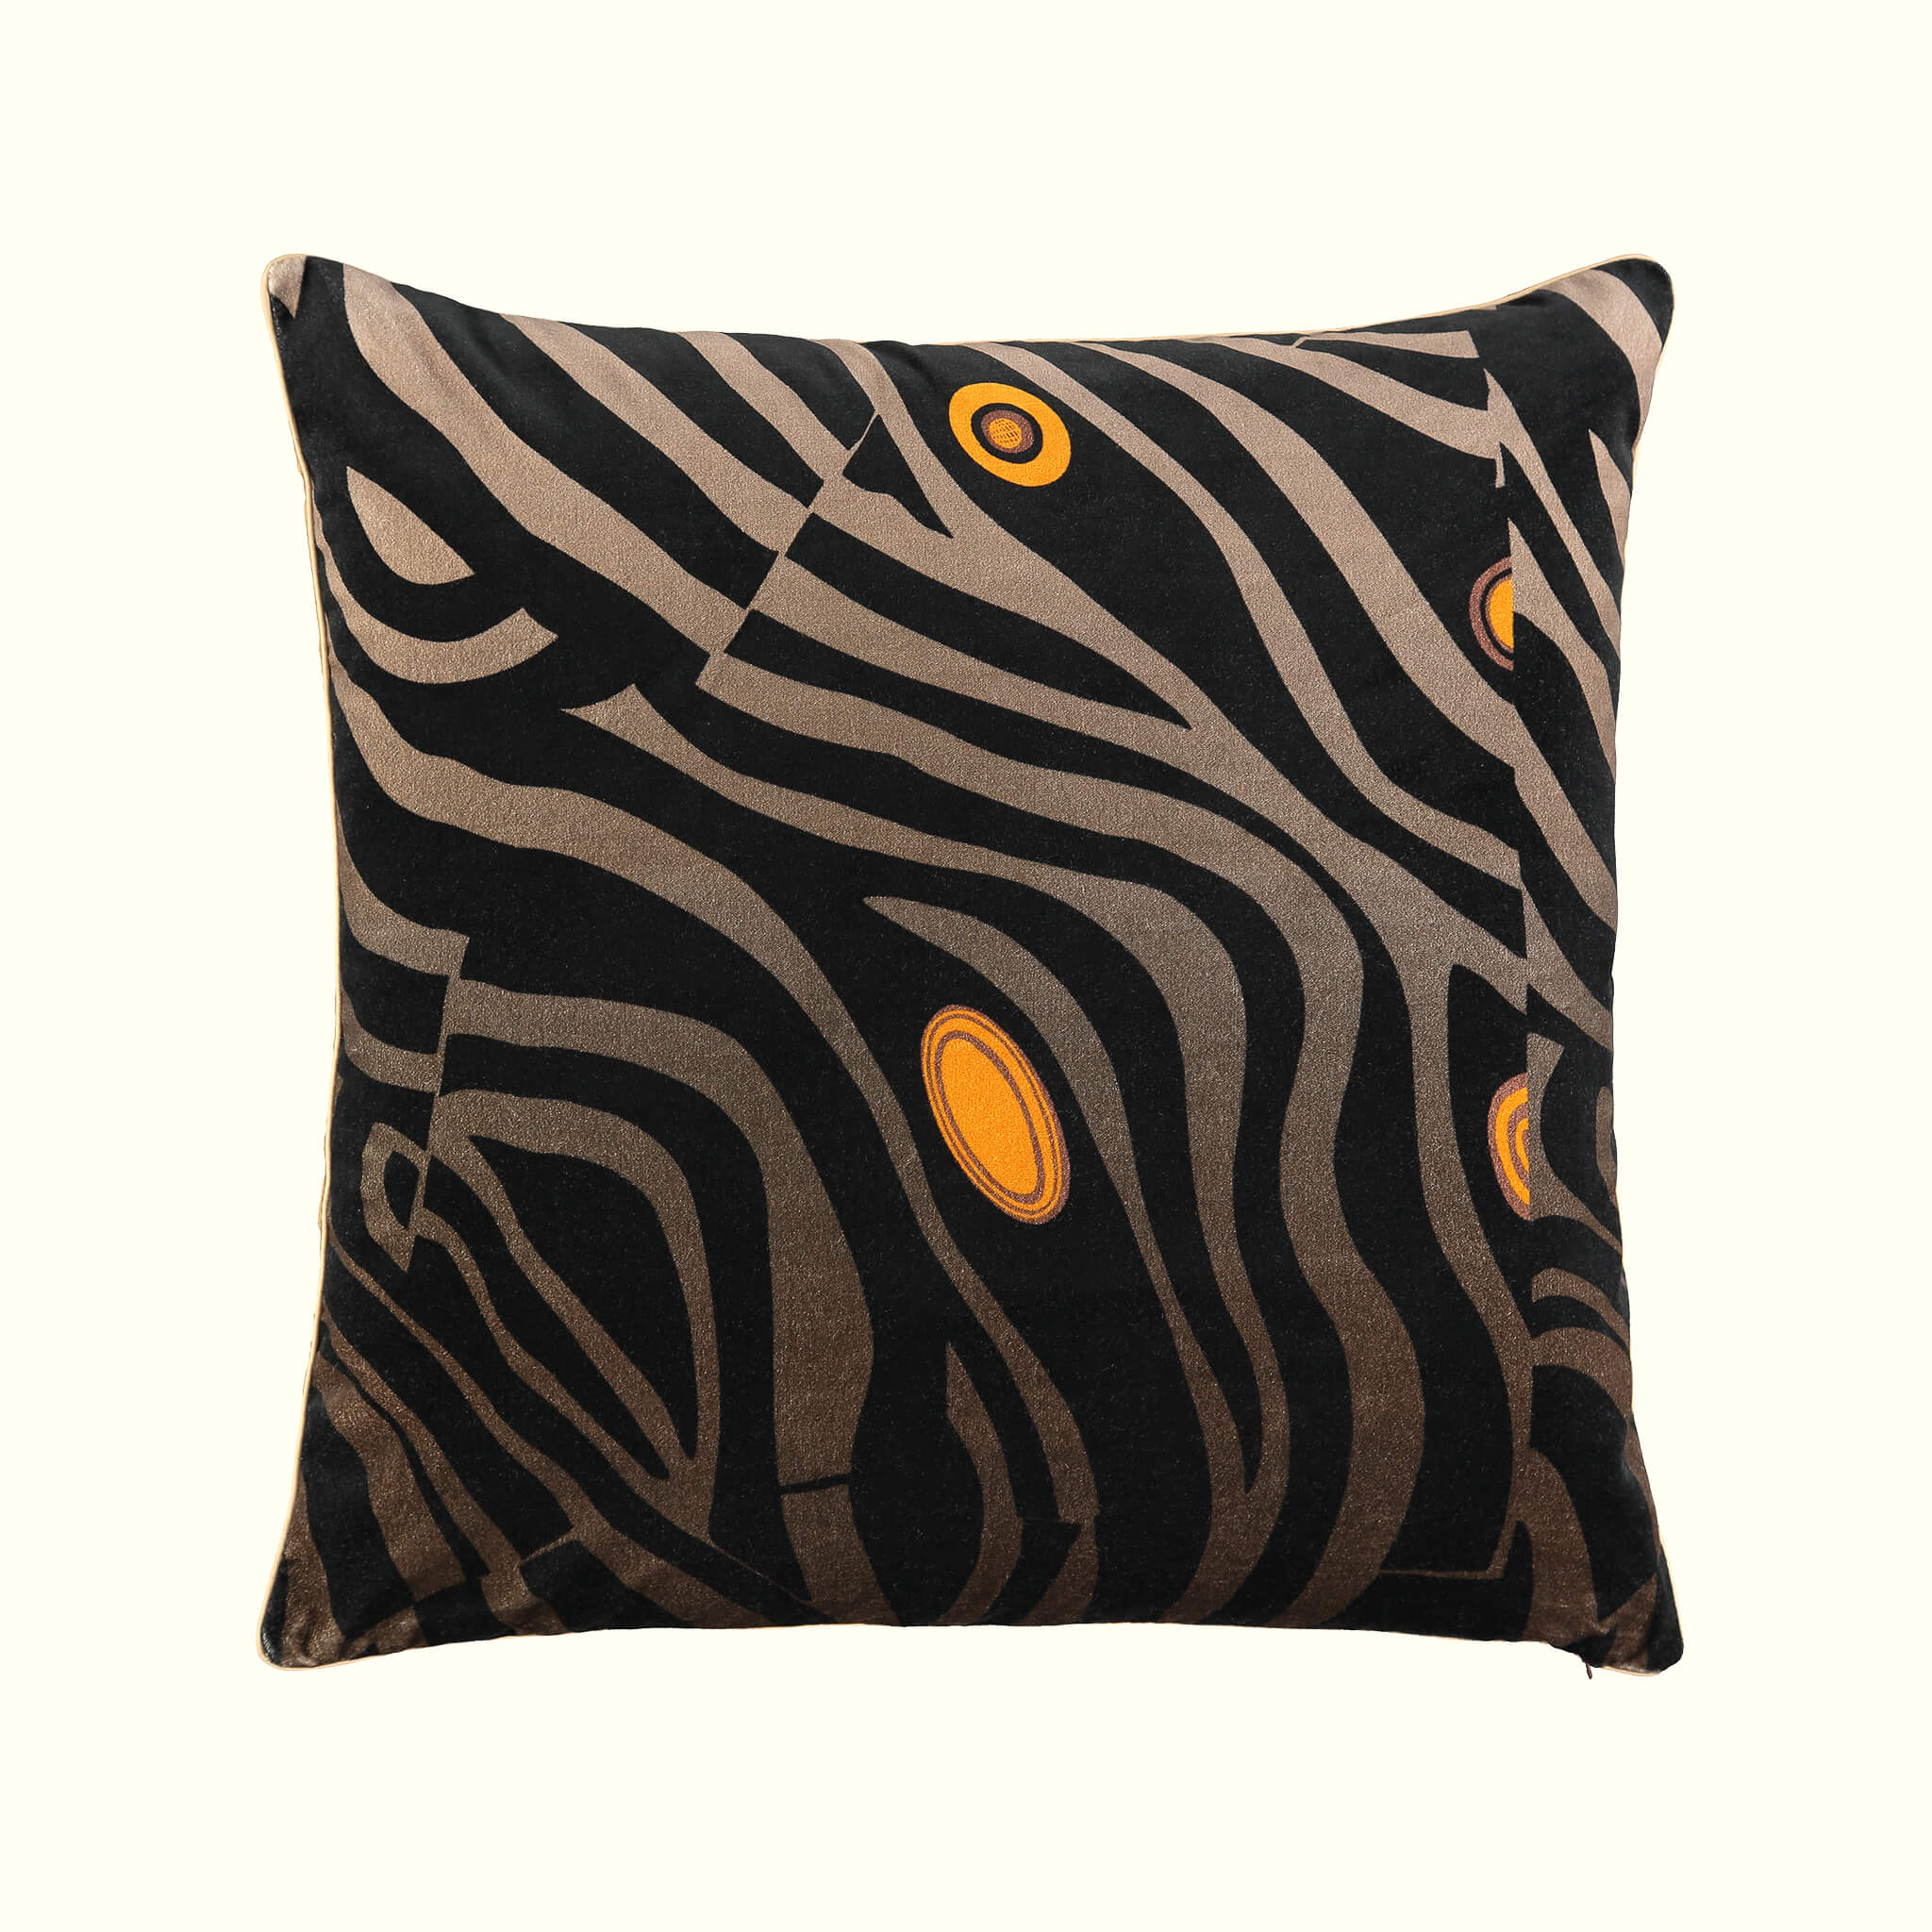 A luxury British cotton velvet cushion by GVE in black Dune print design.